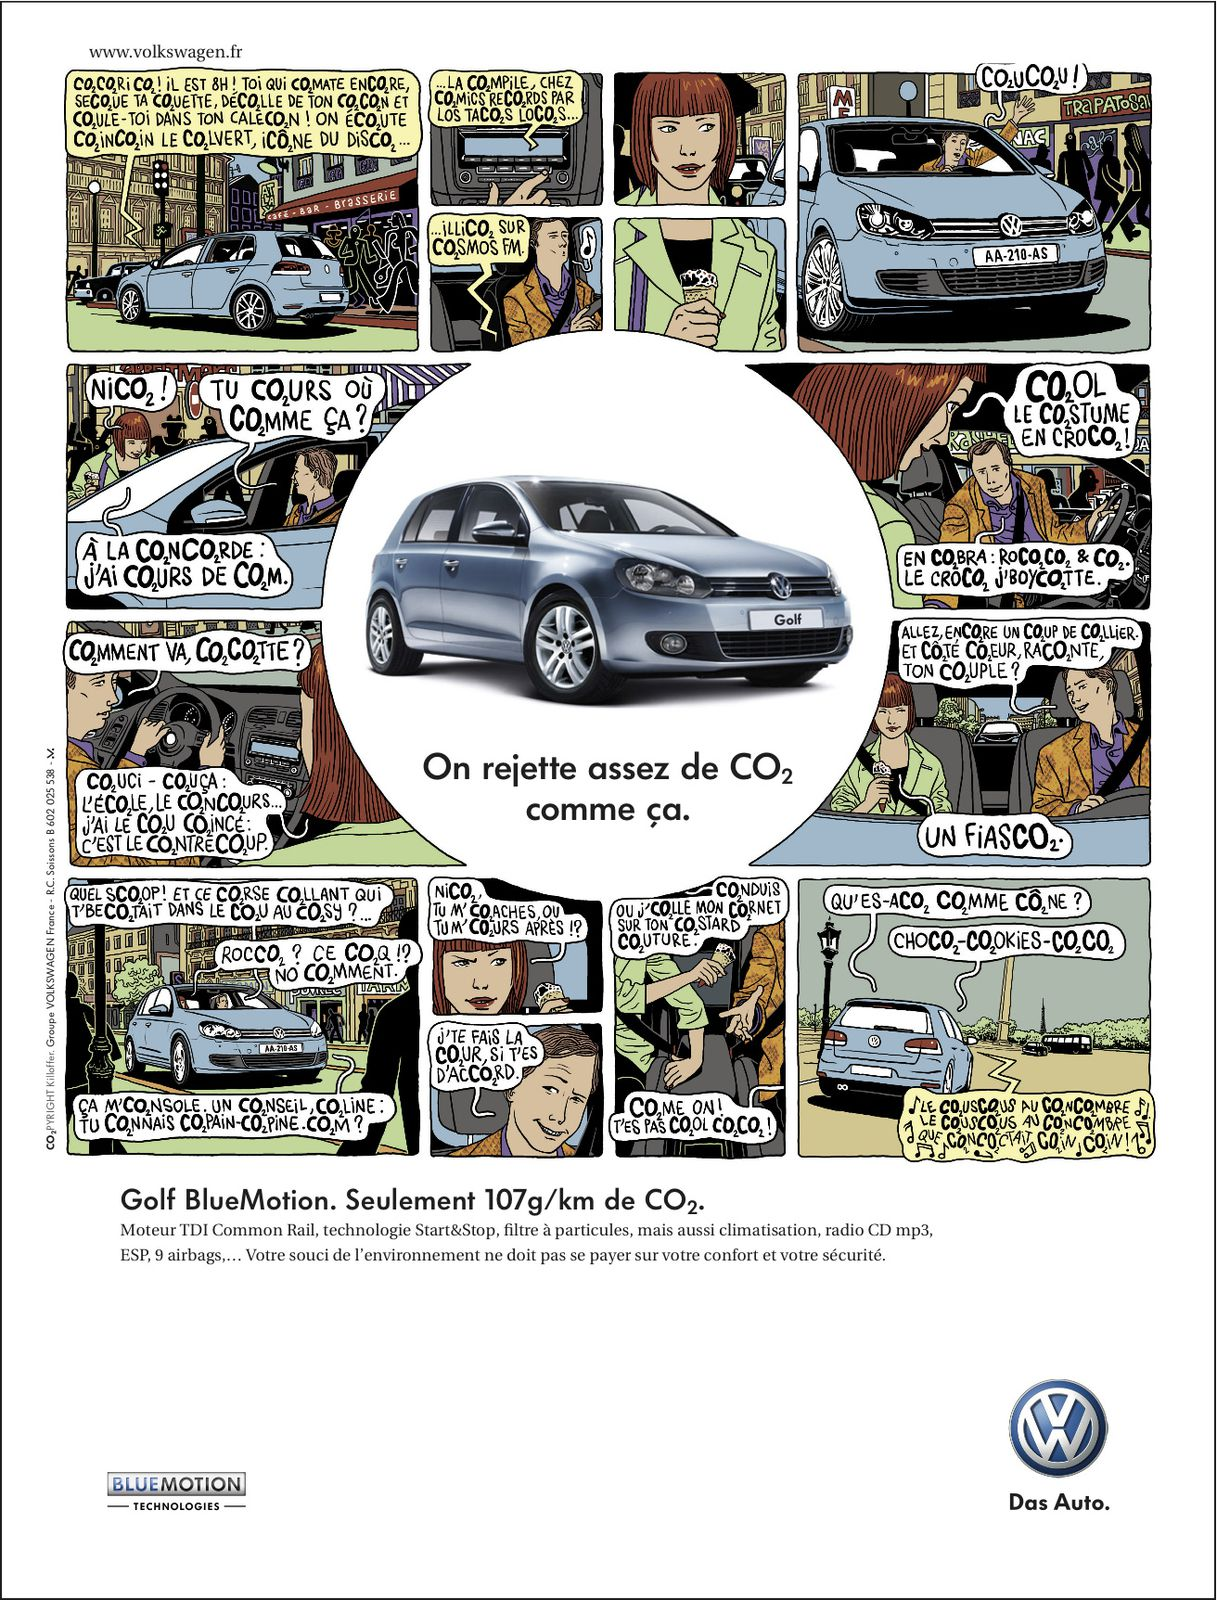 coupsdepub_VW_GolfBLUEMOTION_CO2MIC.jpg